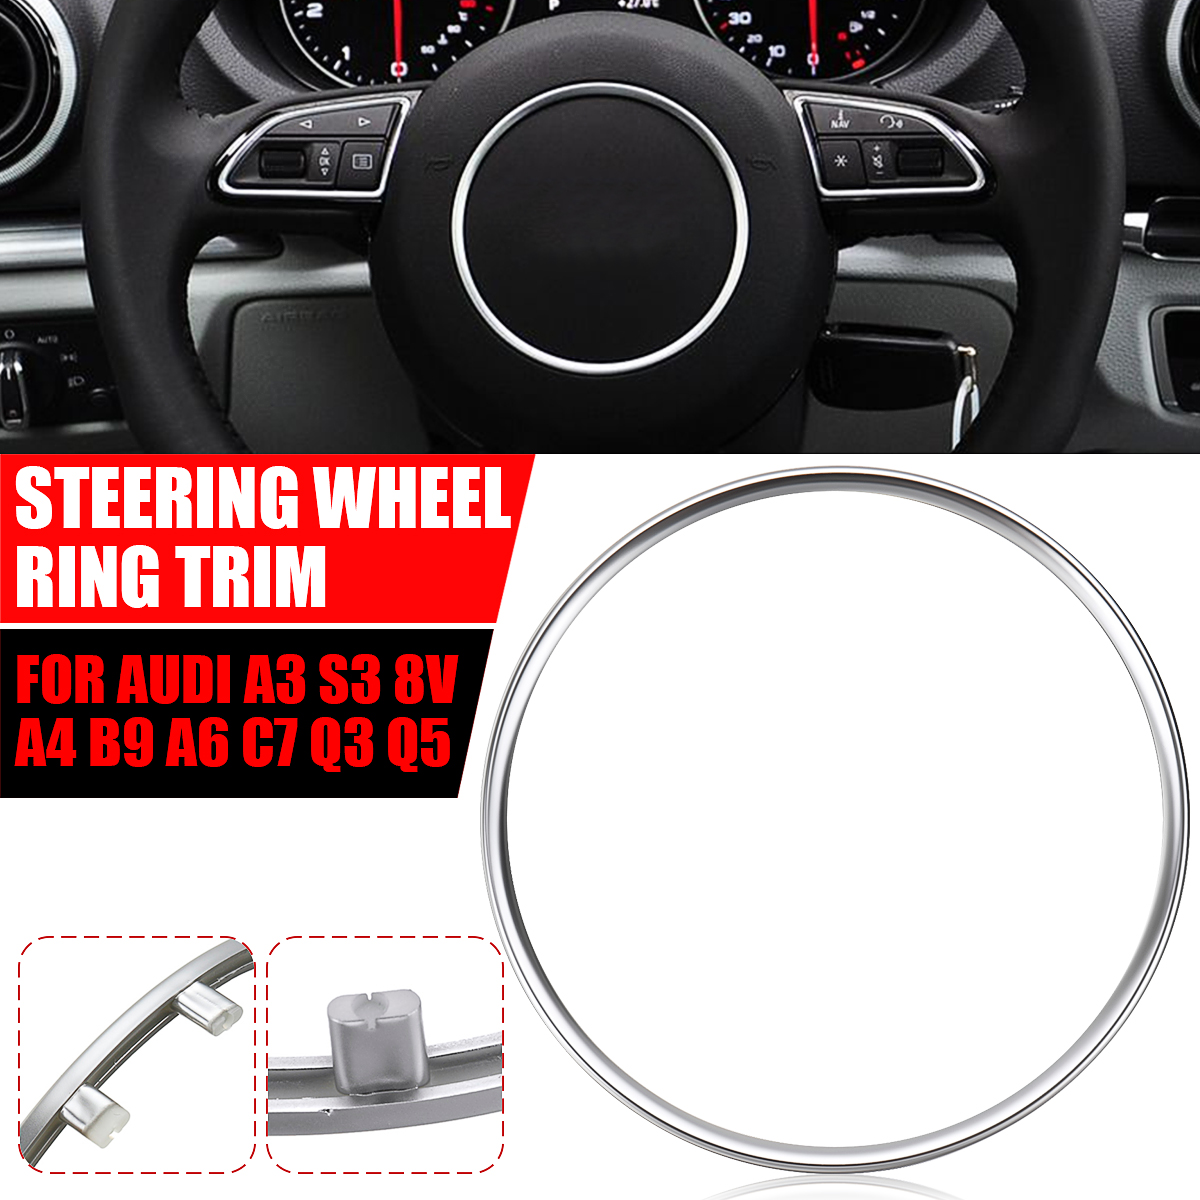 ABS Chrome Steering Wheel Decoration Sticker Trim Sequins Cover Cap Ring For <font><b>Audi</b></font> A3 <font><b>A4</b></font> B8 Q3 Q5 2012 <font><b>2013</b></font> 2014 2015 2016 2017 image